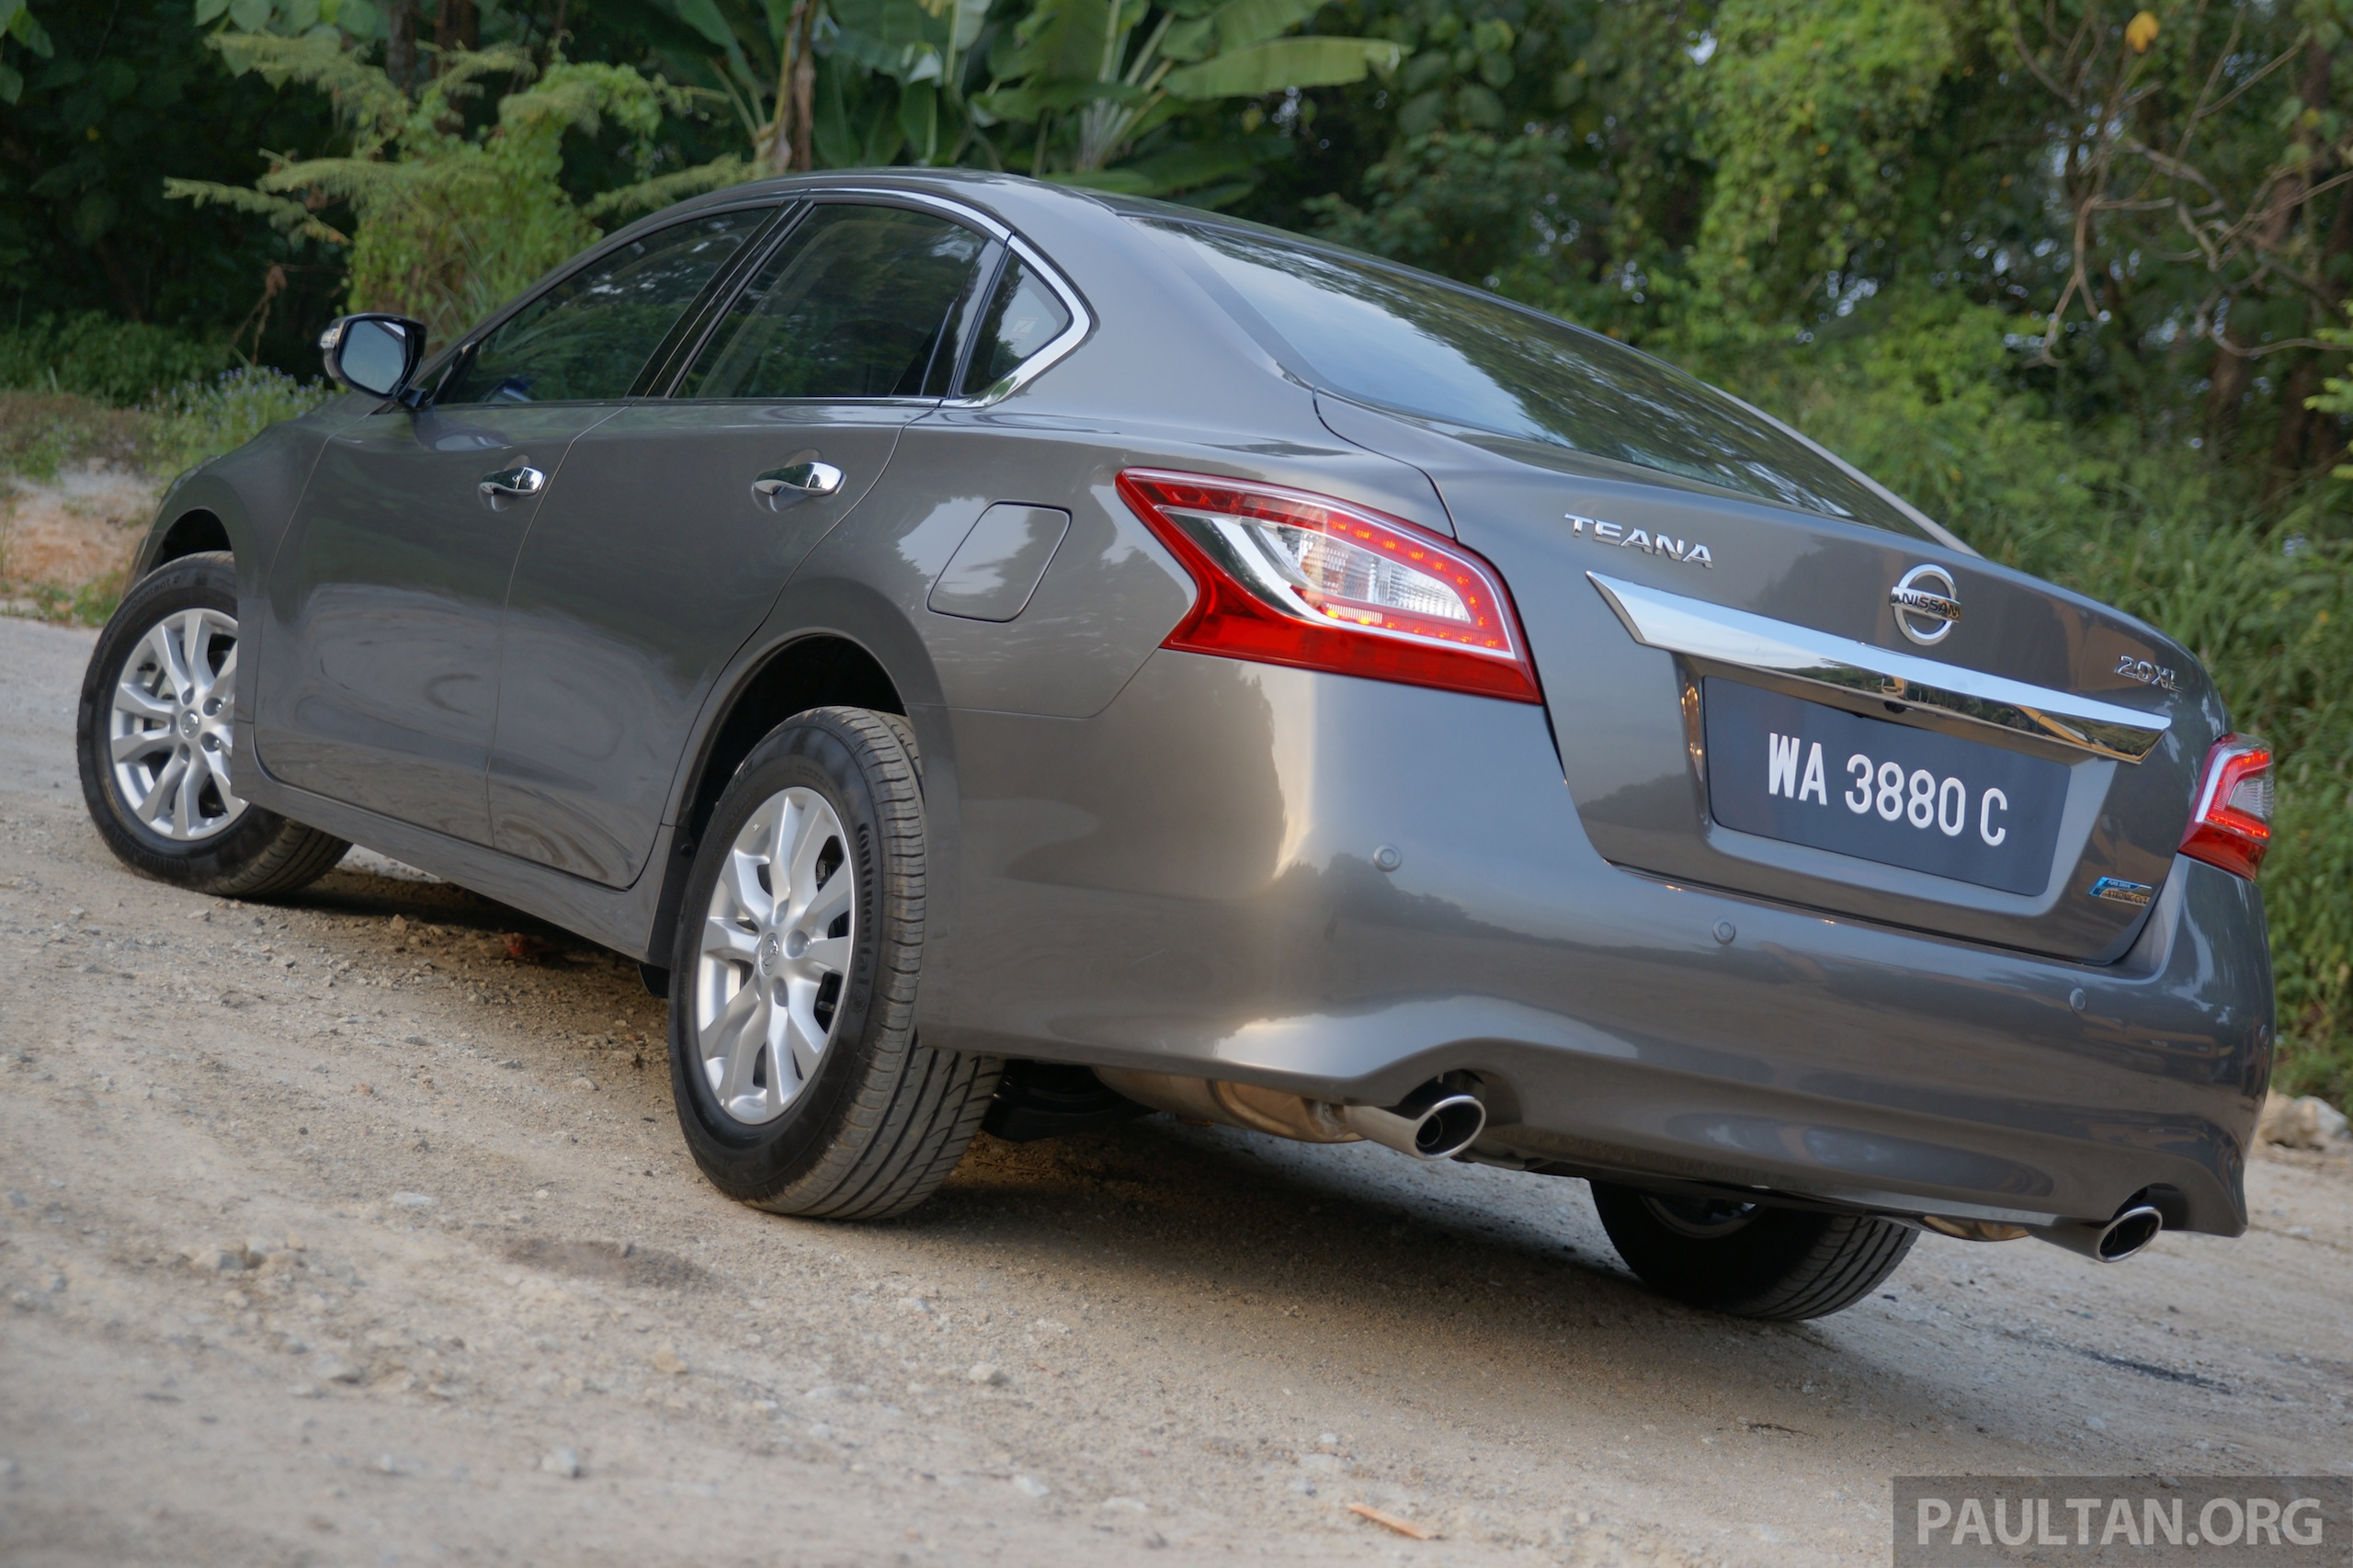 2014 Nissan Altima >> DRIVEN: Nissan Teana 2.0XL – mid-spec, top choice? Image ...